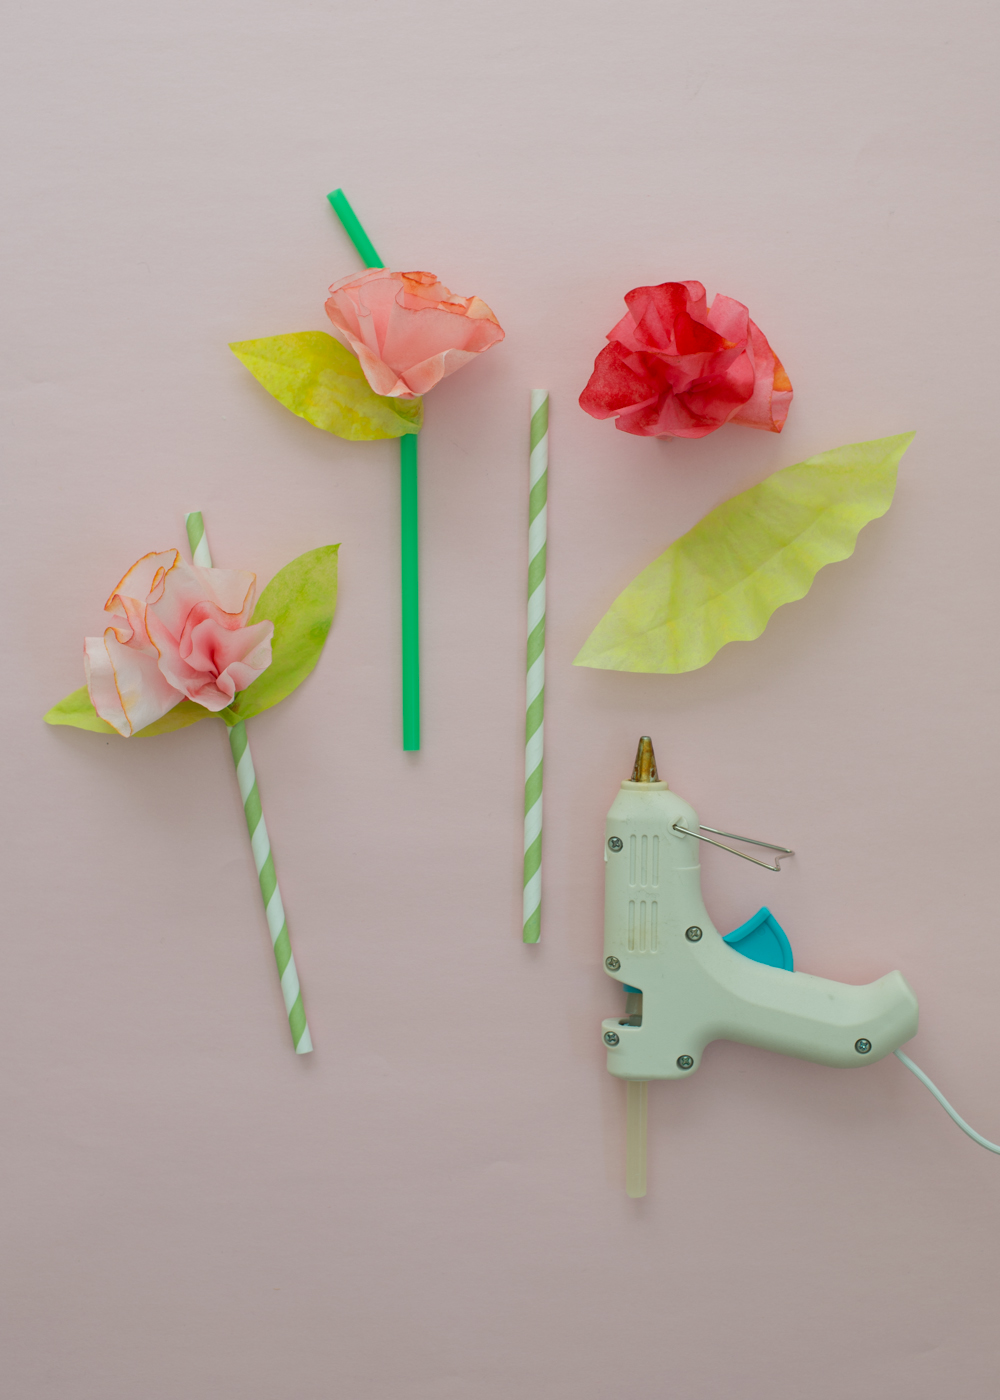 Paper-Goods-Projects-Flower-Straw-How-To